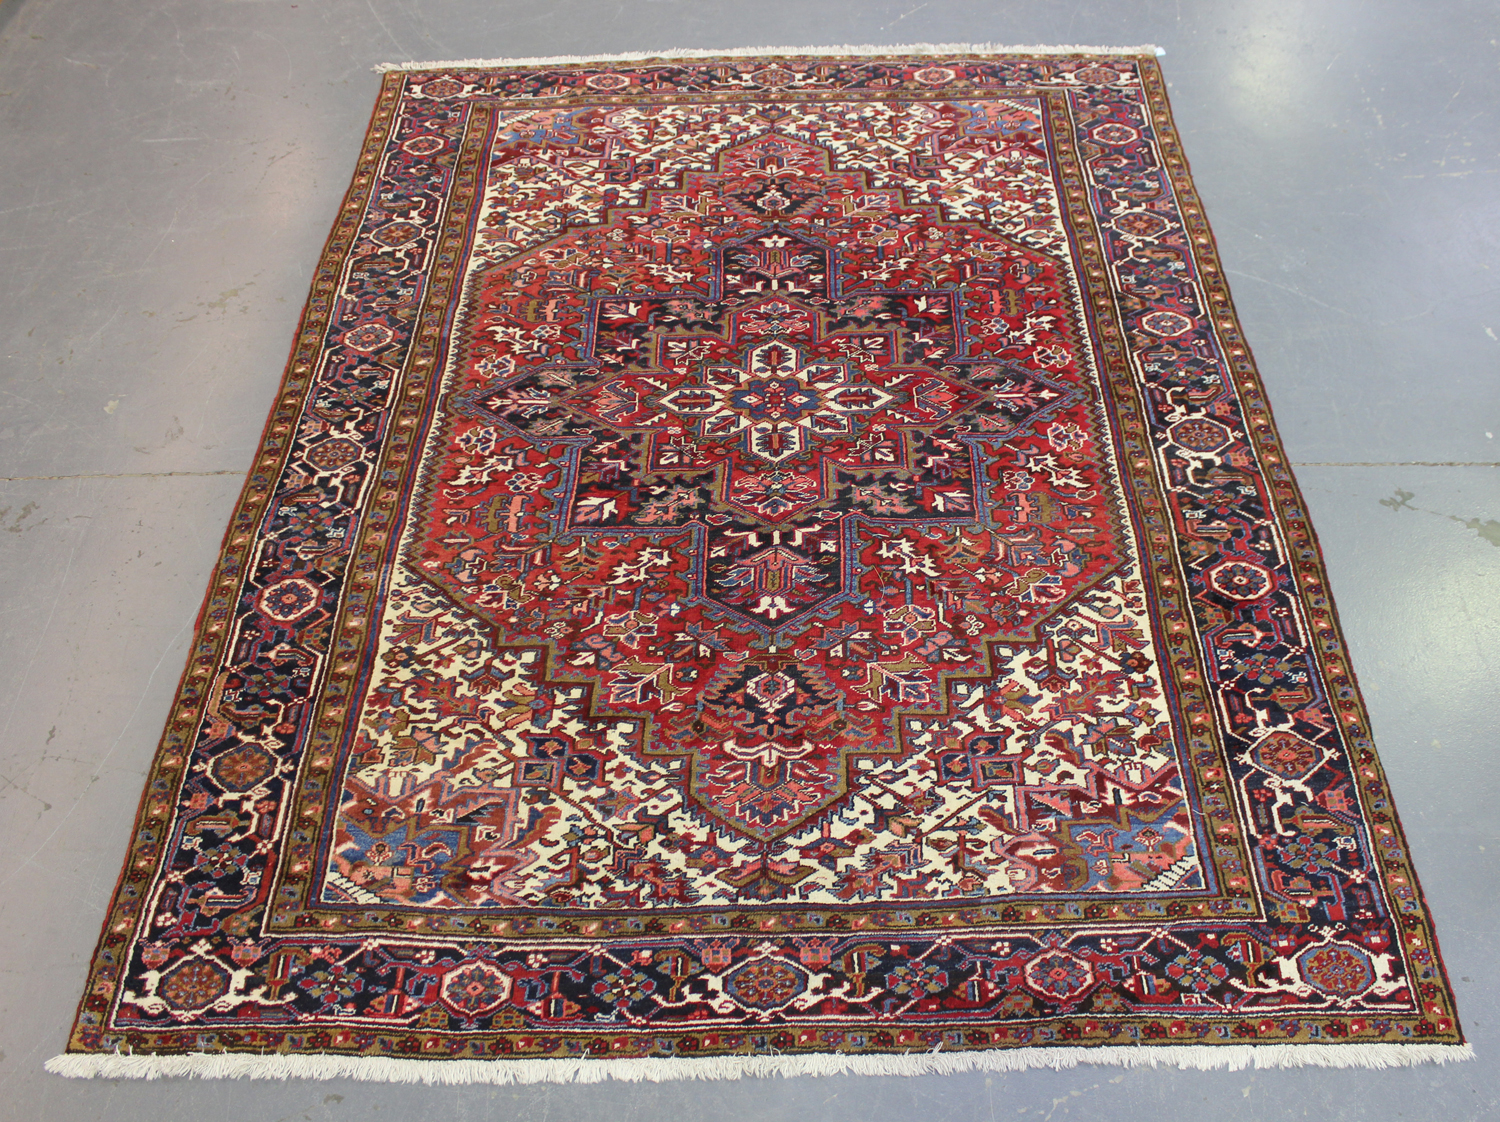 A Heriz carpet, North-west Persia, mid-20th century, the red field with a bold flowerhead